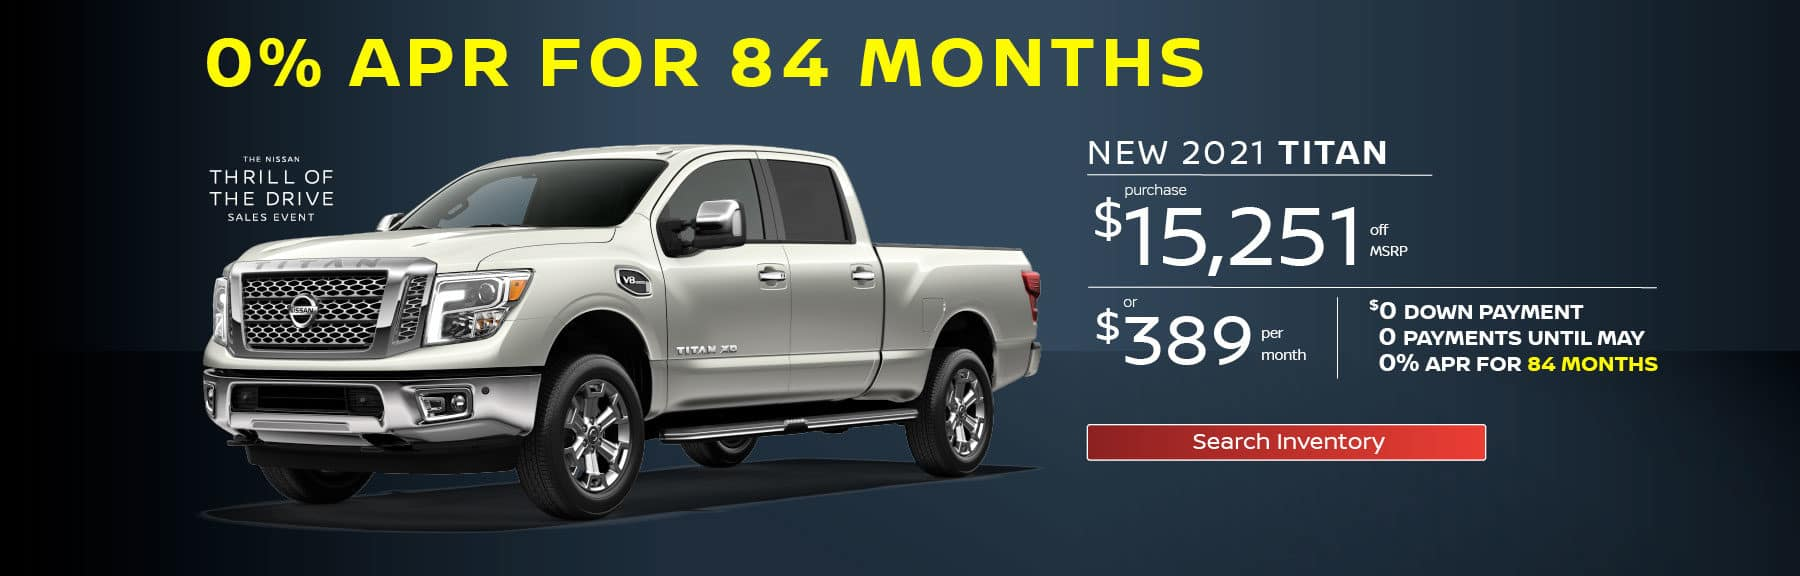 0% APR for 84 Months, New 2021 Titan $15,251 off MSRP, or $389 per month, or $0 Down 0 Payments Until May 0% APR for 84 months